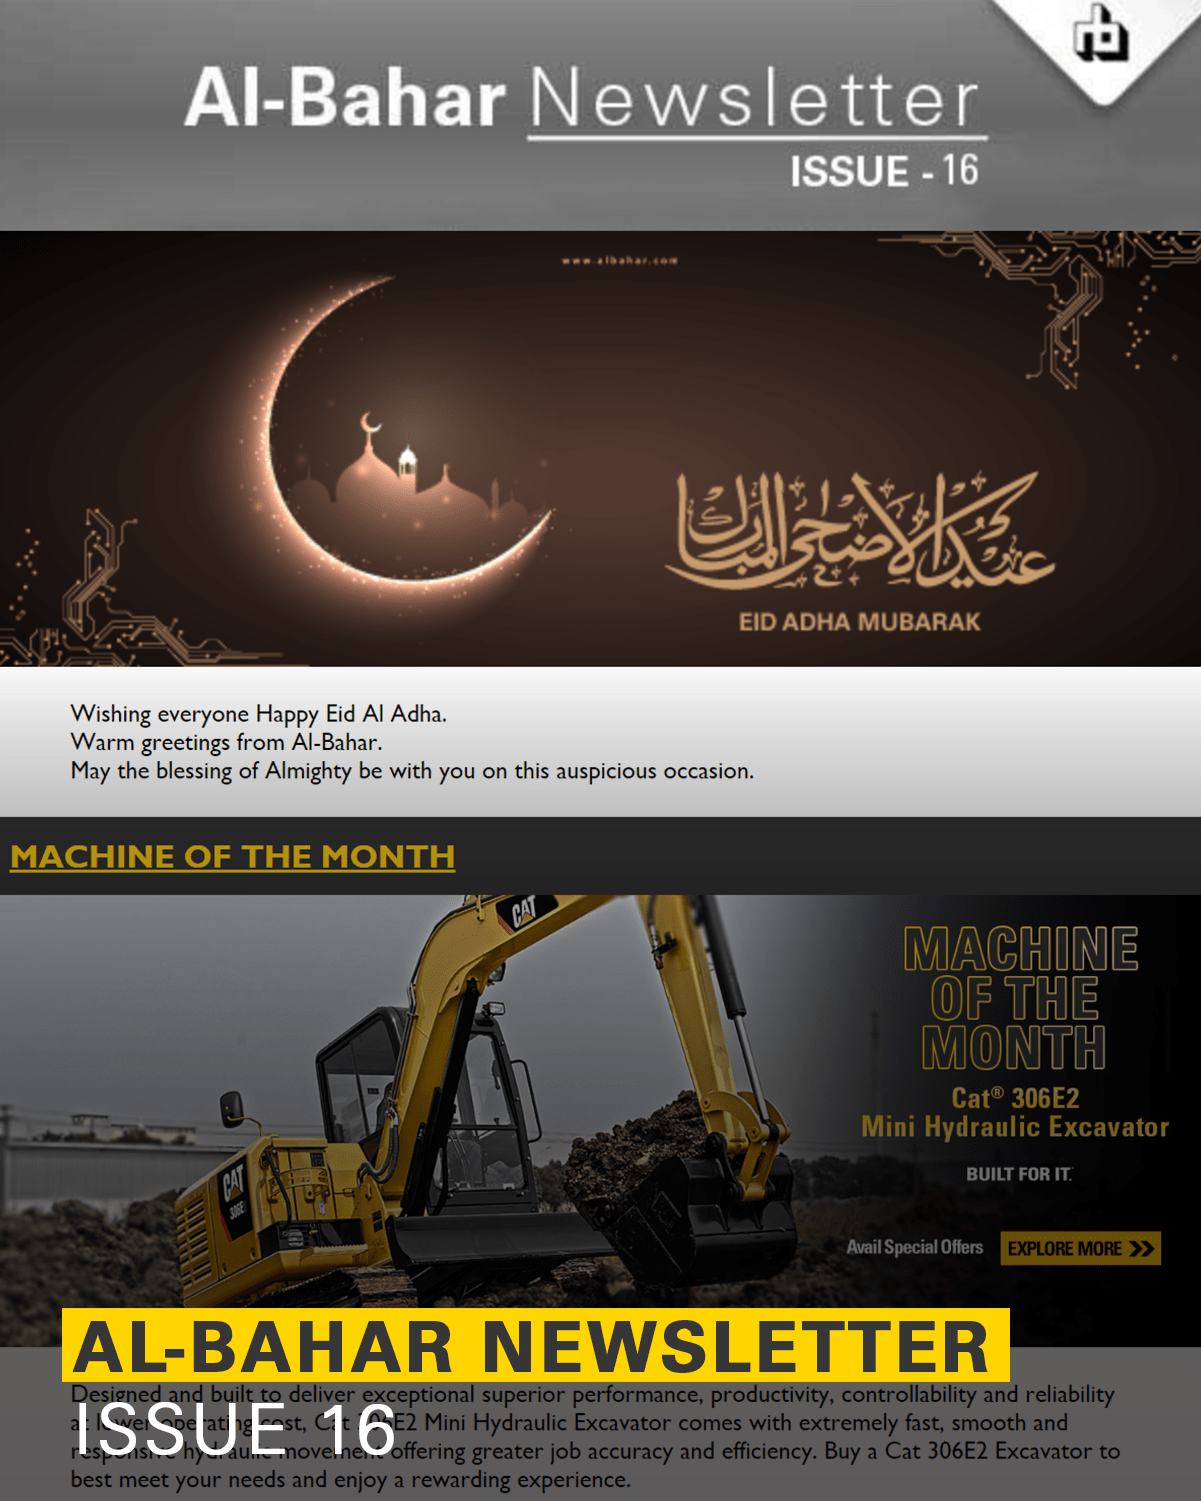 al-bahar-2018-newsletter-issue-16